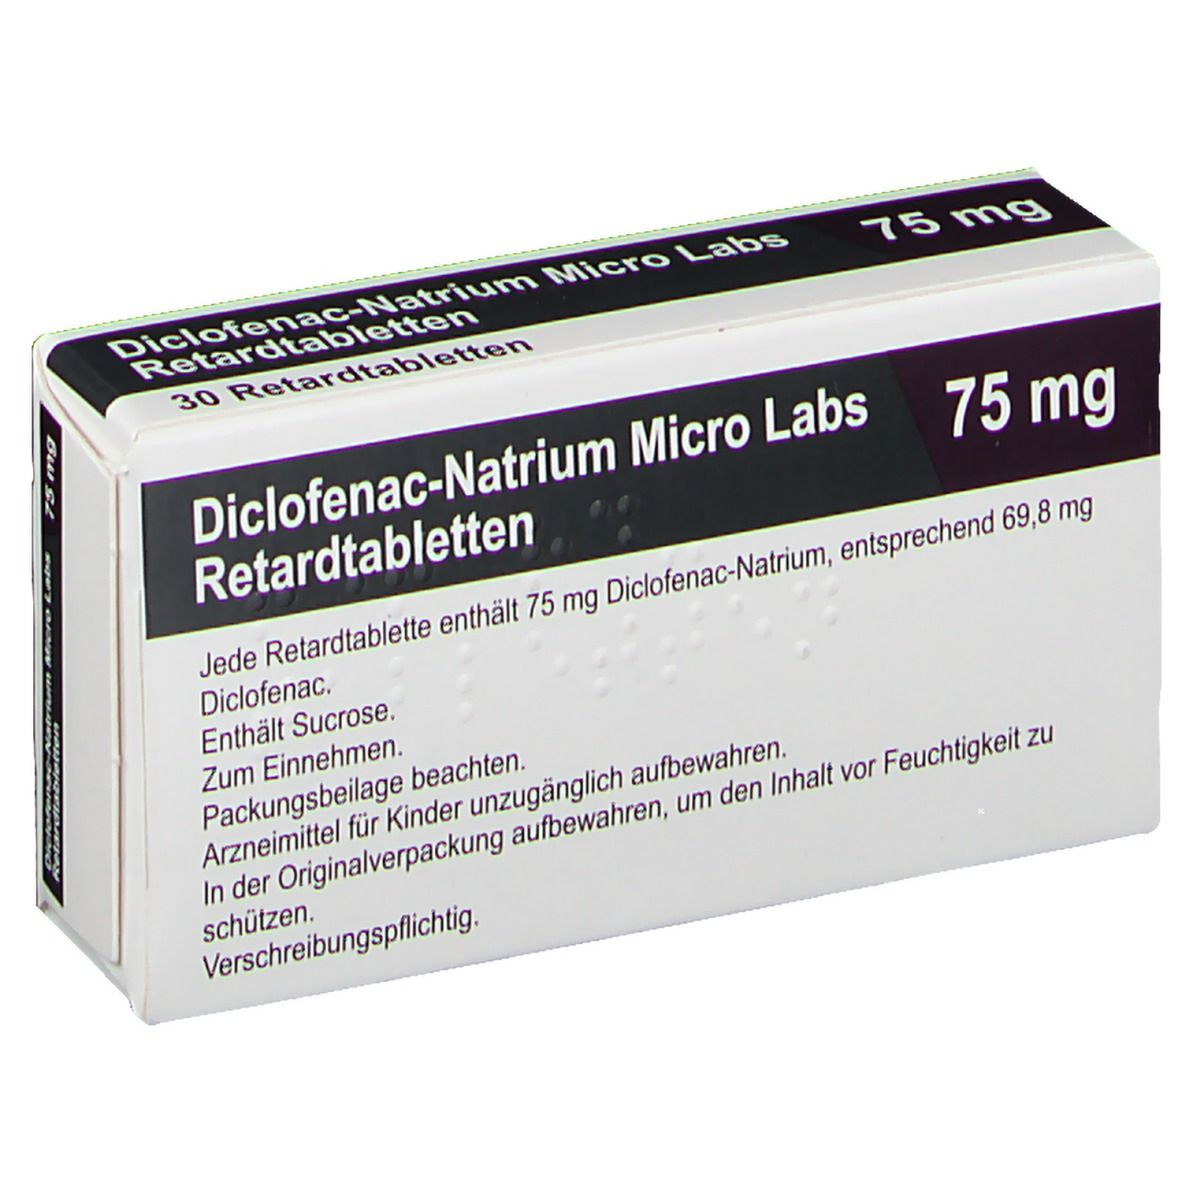 Ivermectin for humans price south africa